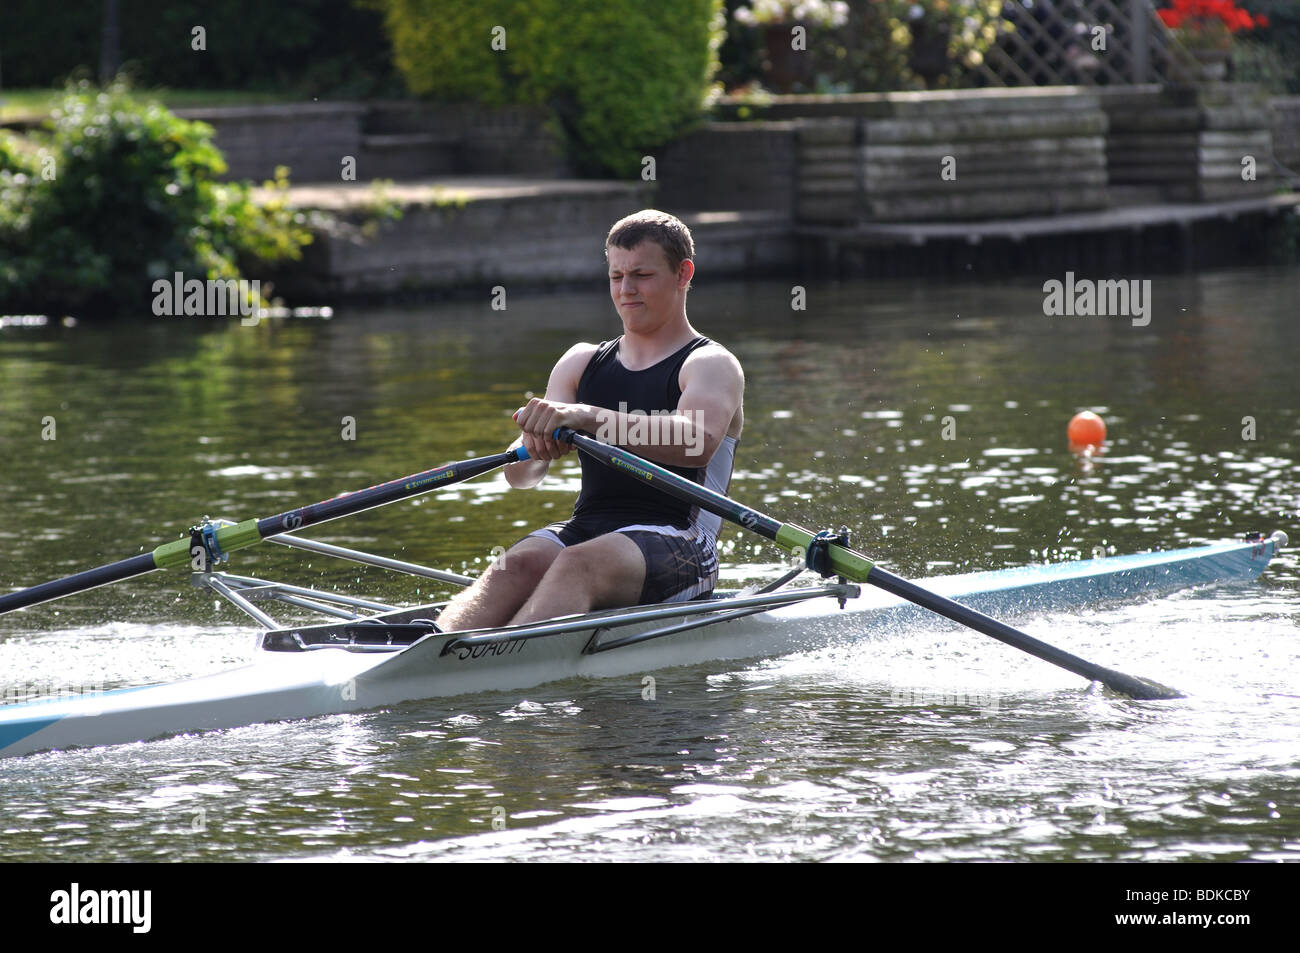 Rowing on River Avon at Warwick Regatta, Warwickshire, England, UK - Stock Image